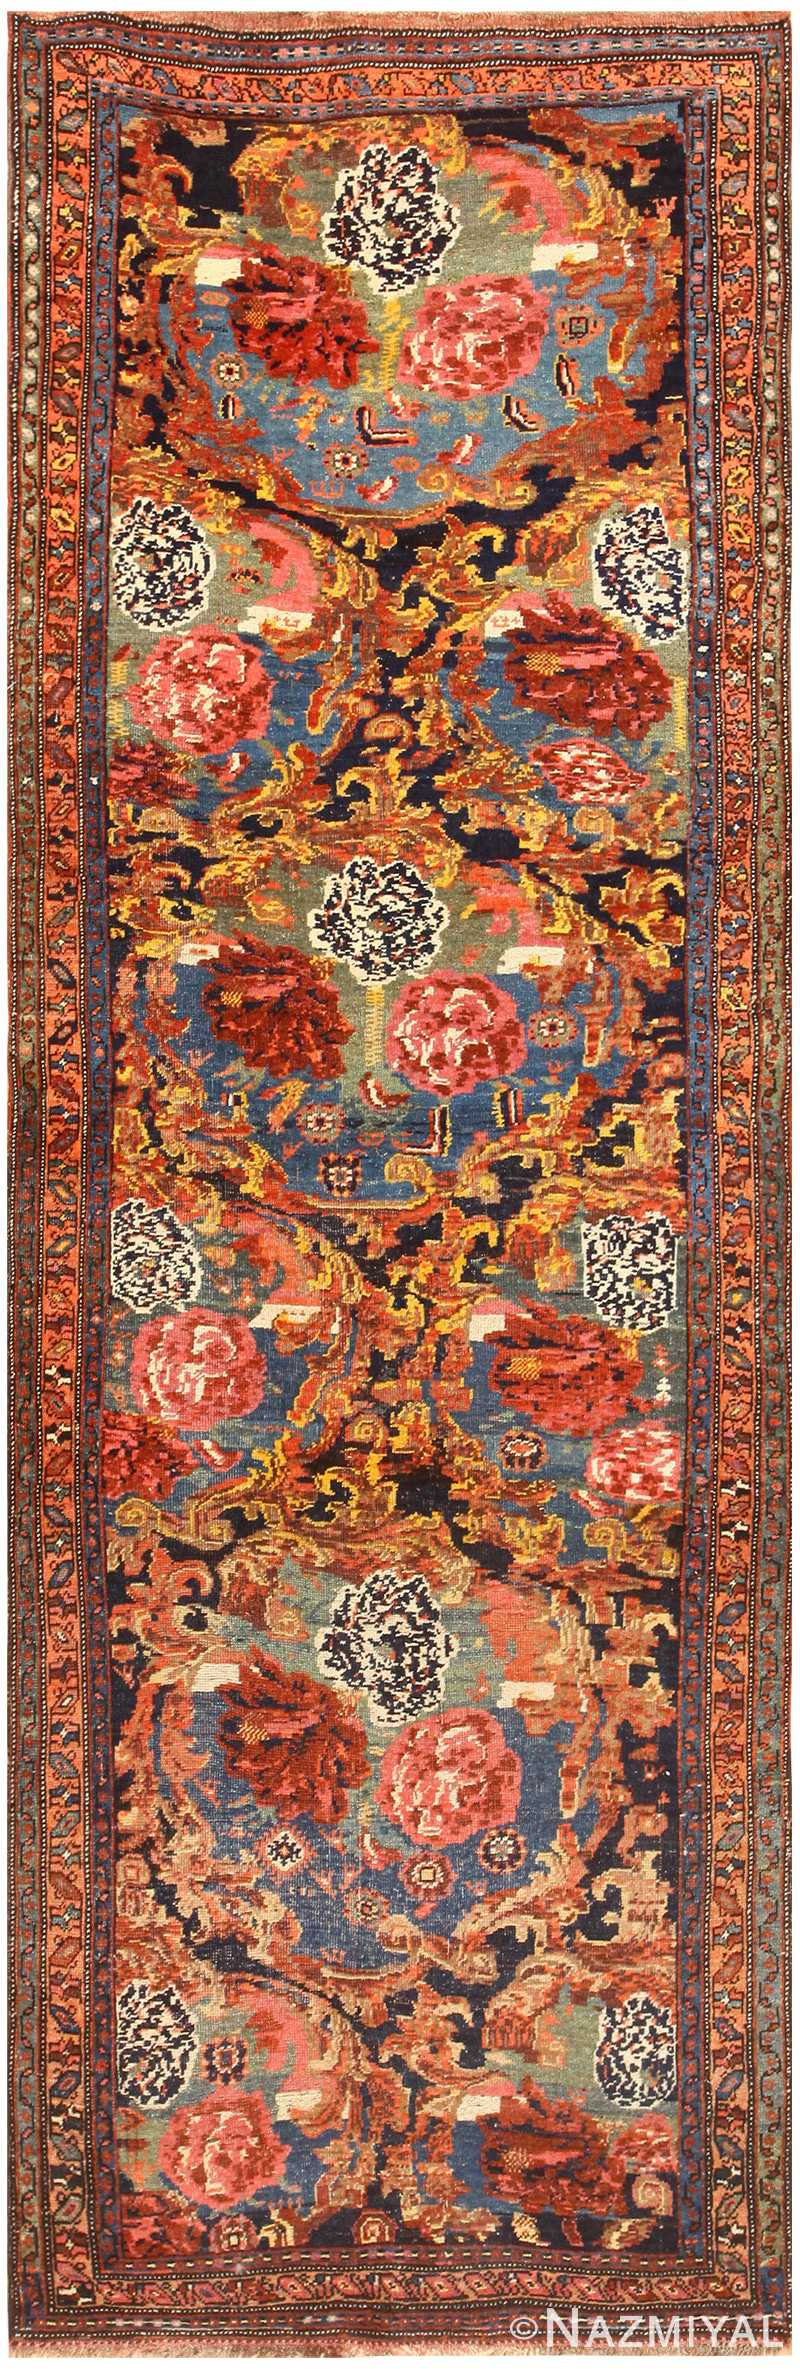 Antique Persian Bidjar Rug 48630 Detail/Large View